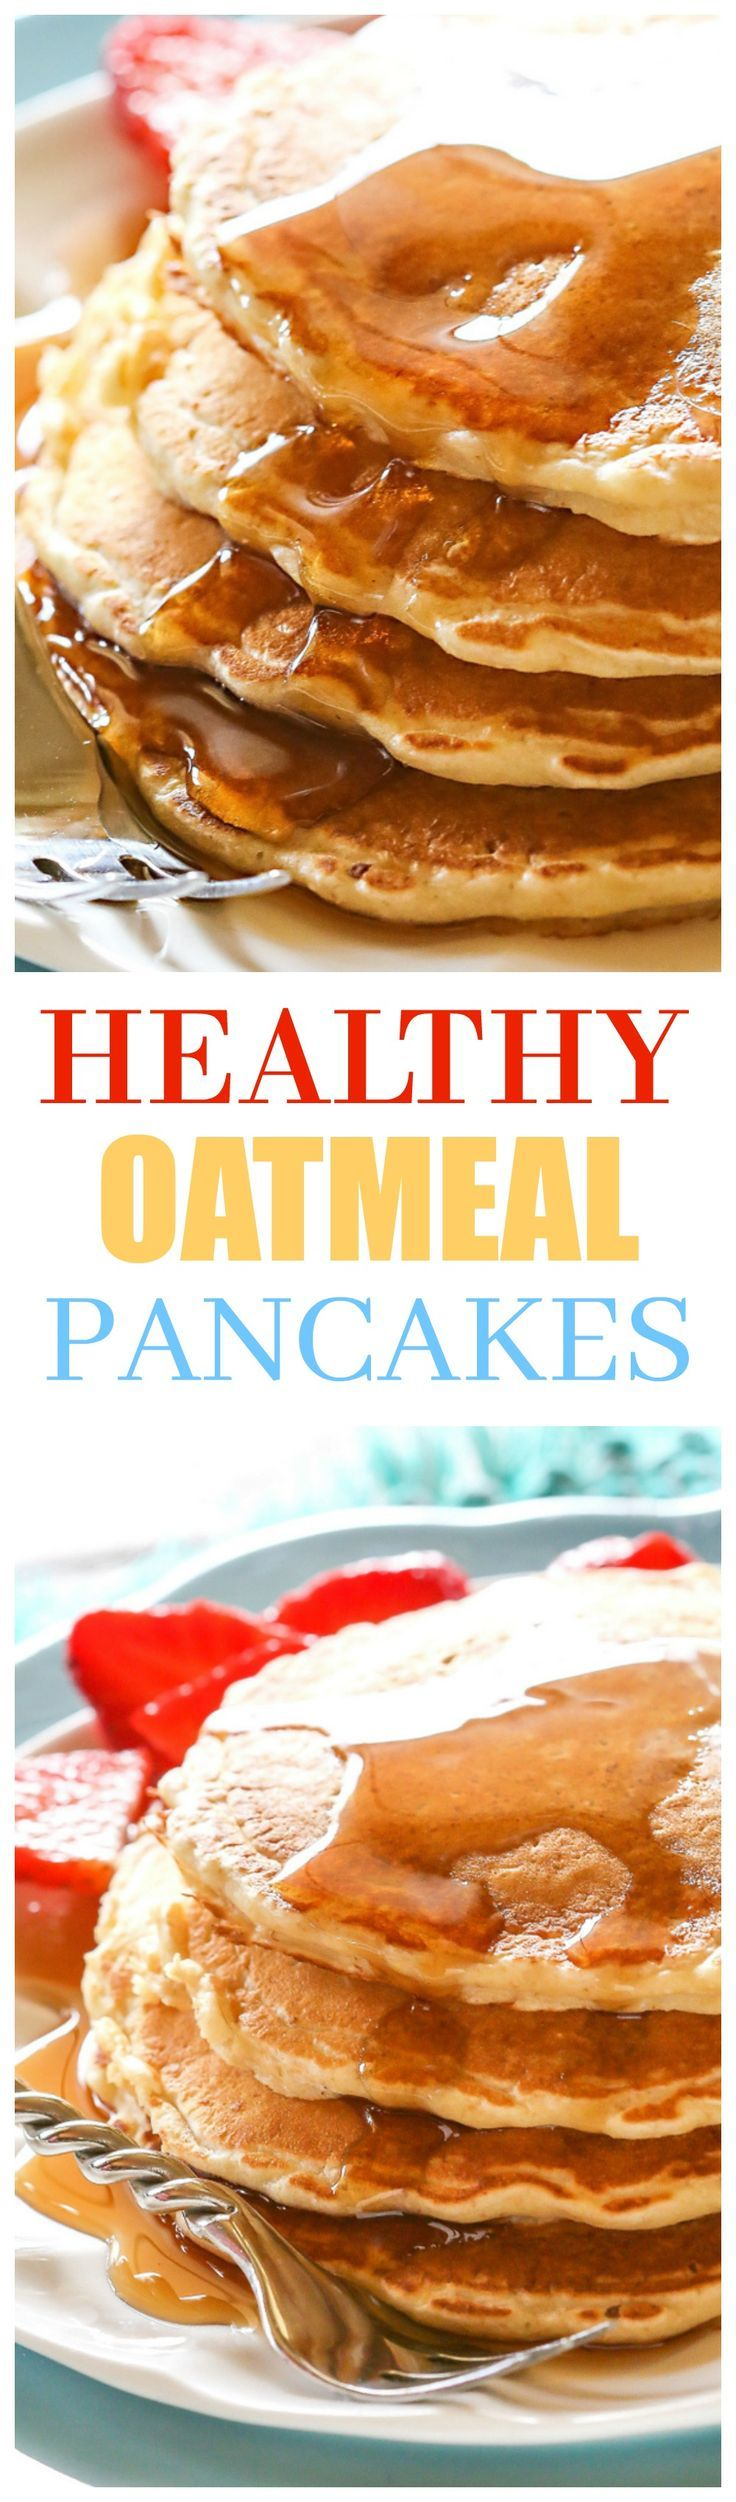 Healthy Oatmeal Pancakes - a hearty pancake recipe with blended oats in the batter. the-girl-who-ate-everything.com (Healthy Baking Breakfast)